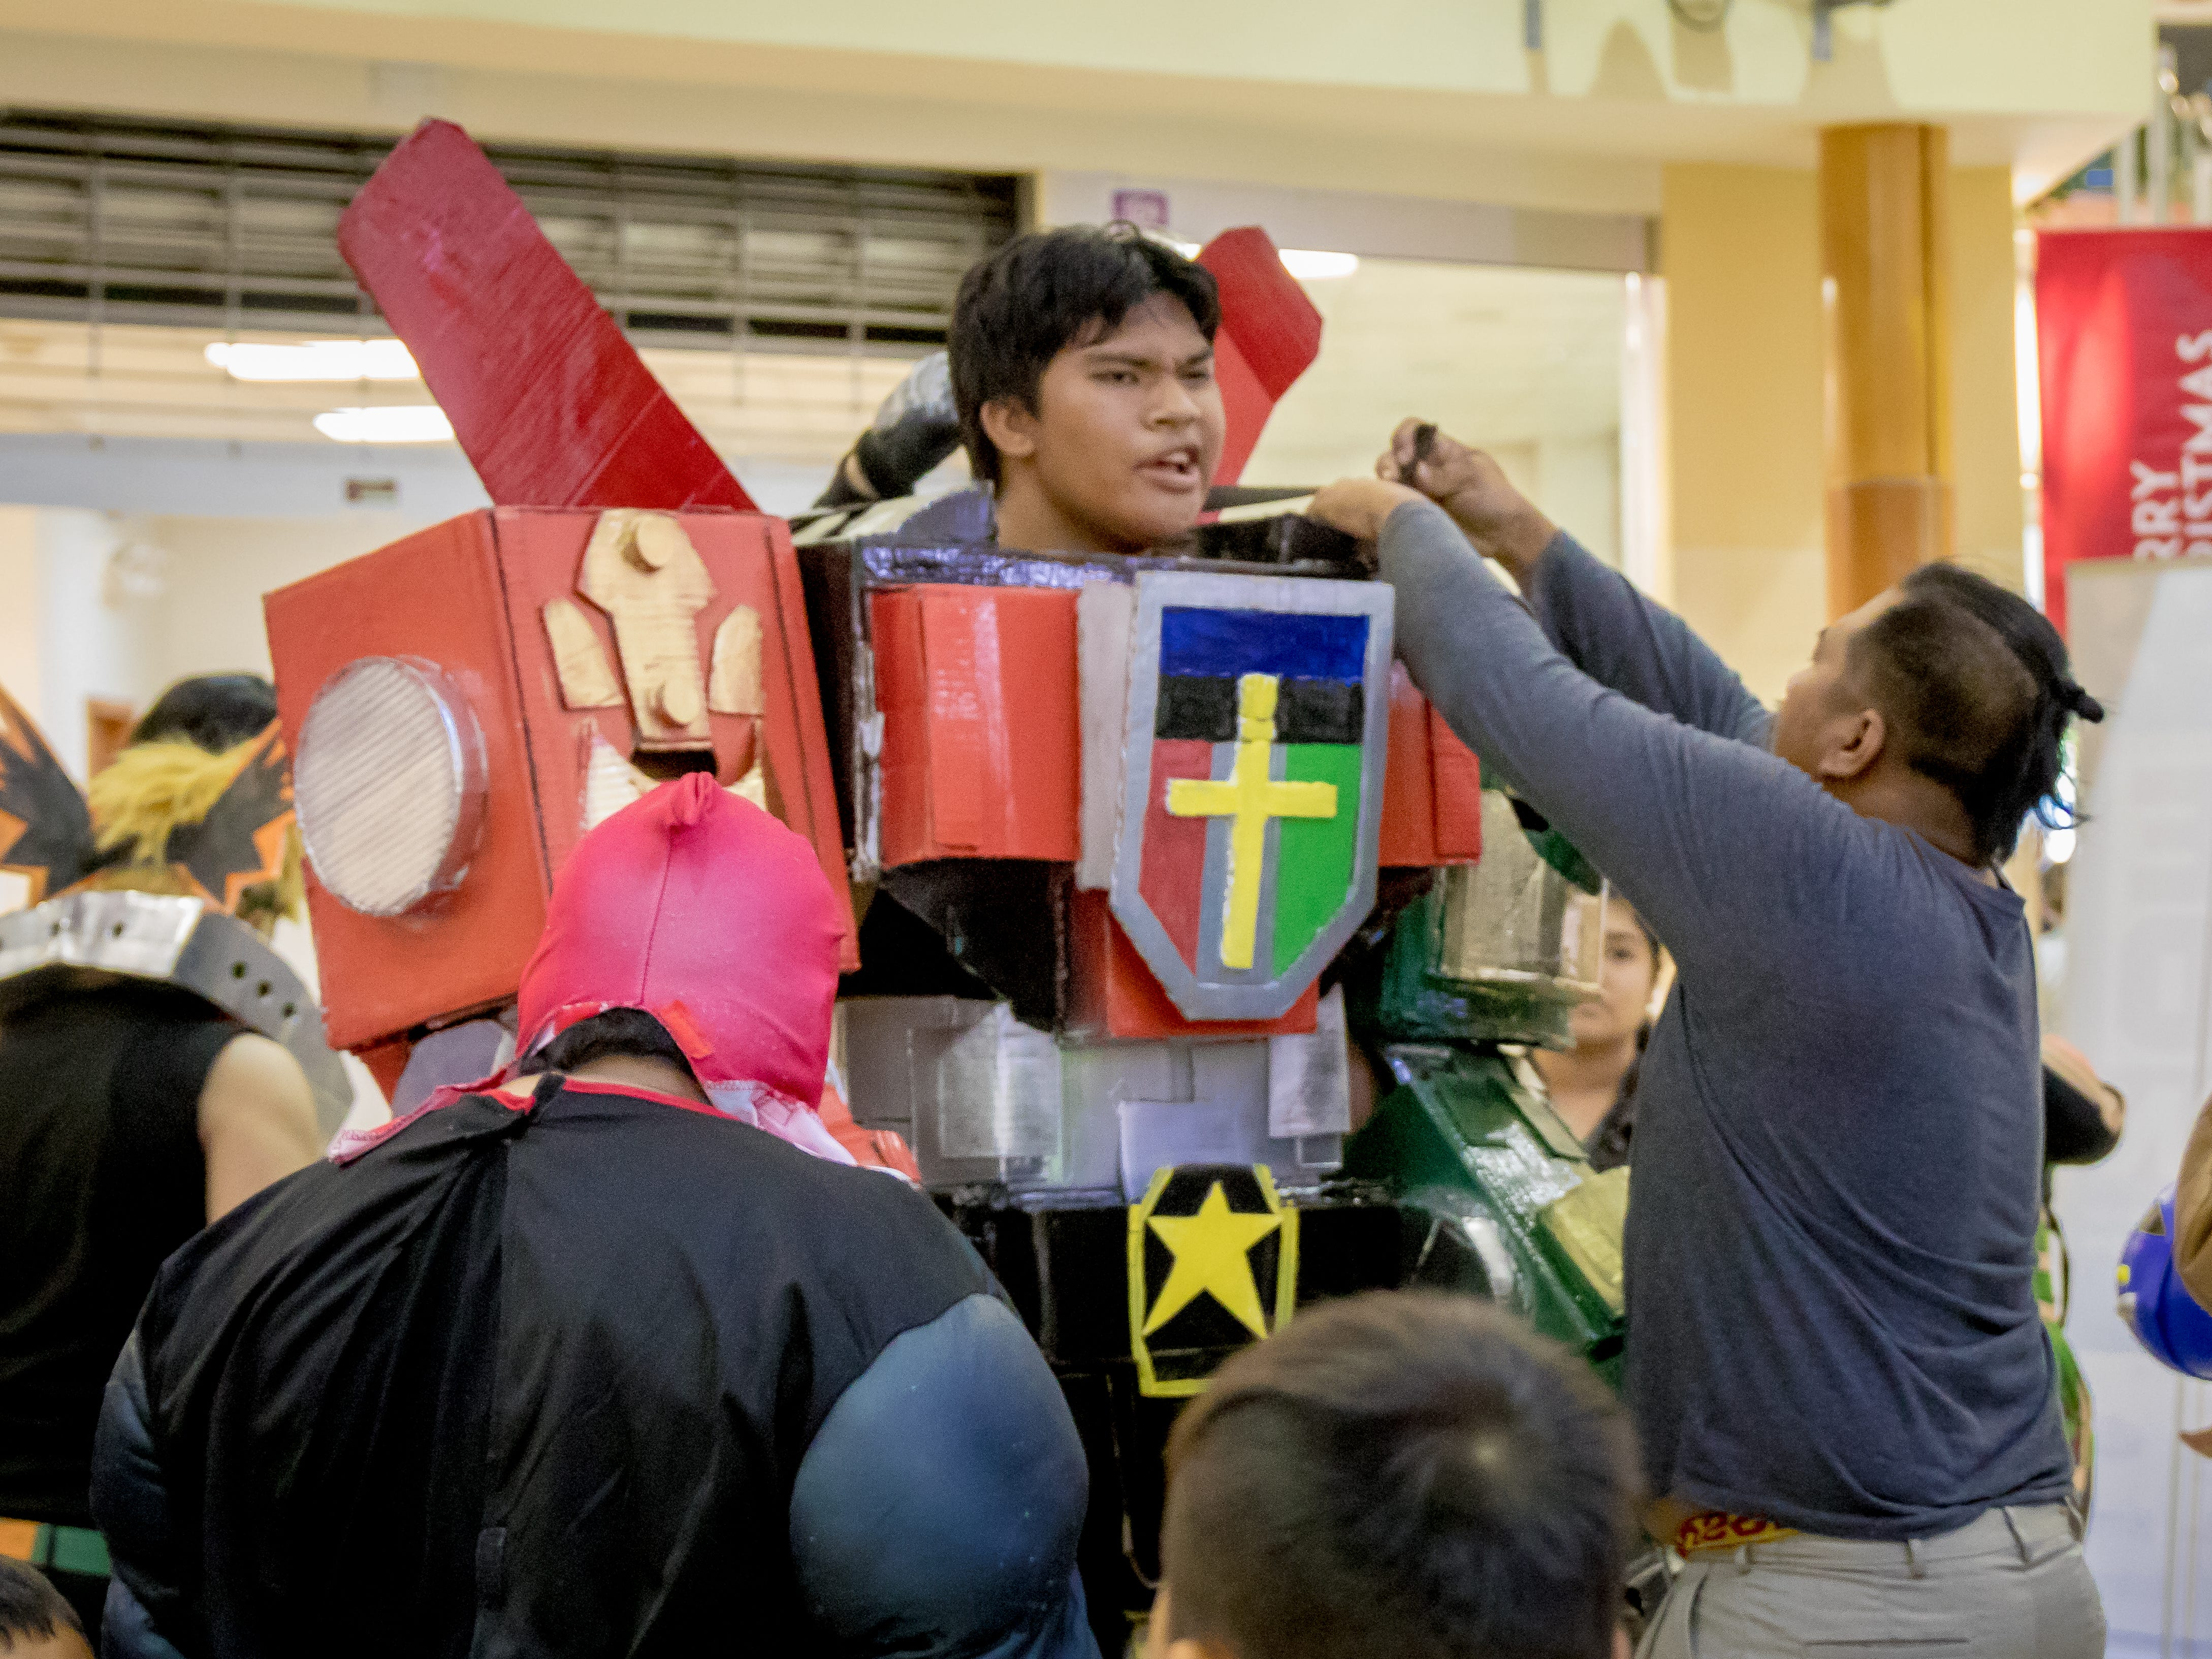 Cosplayers gets help dressing up during the Herocon event held at Agana Shopping Center on Dec. 9.